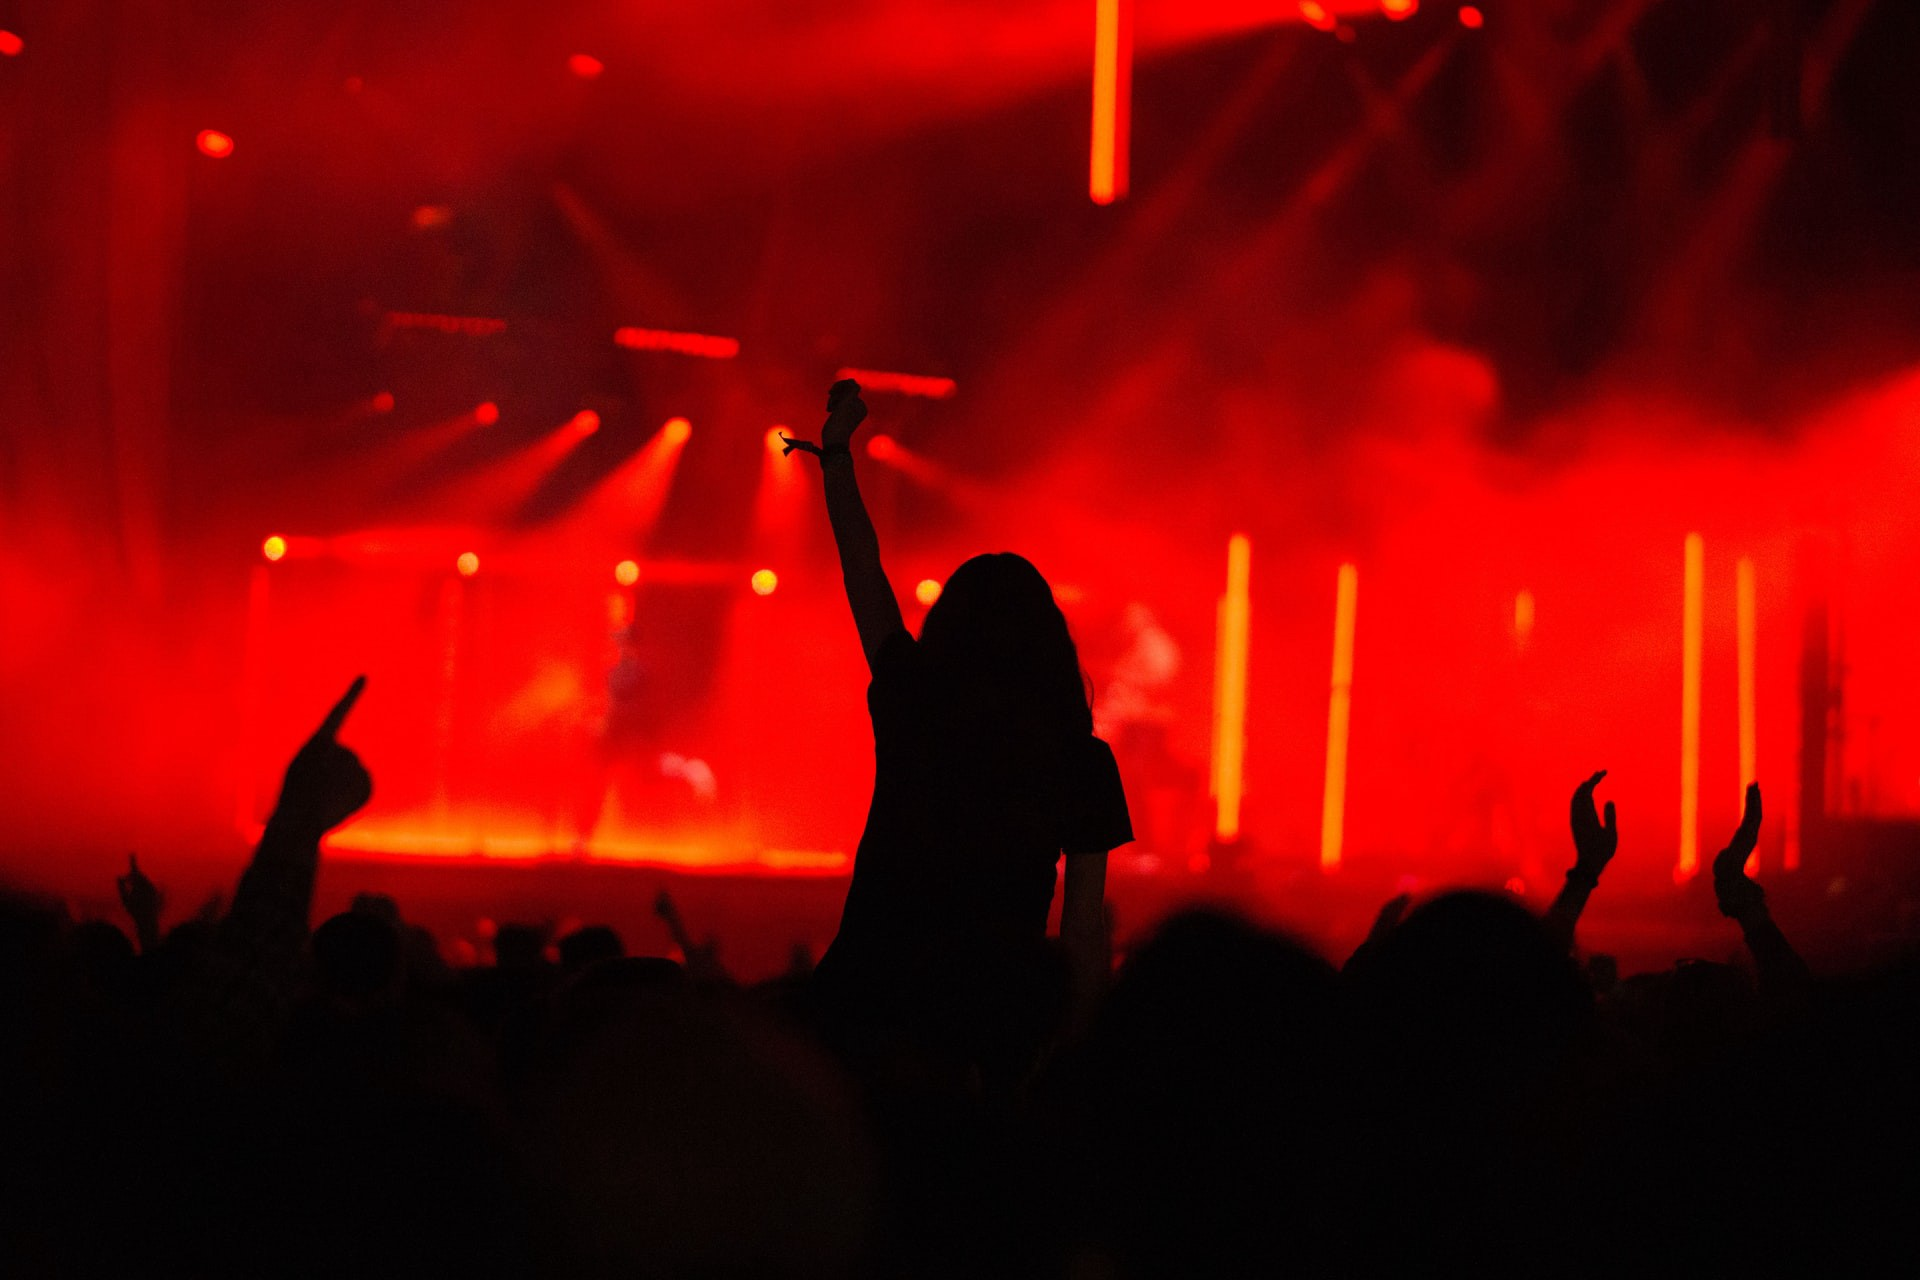 Silhouette of a woman at an electronic show on the shoulders of someone else